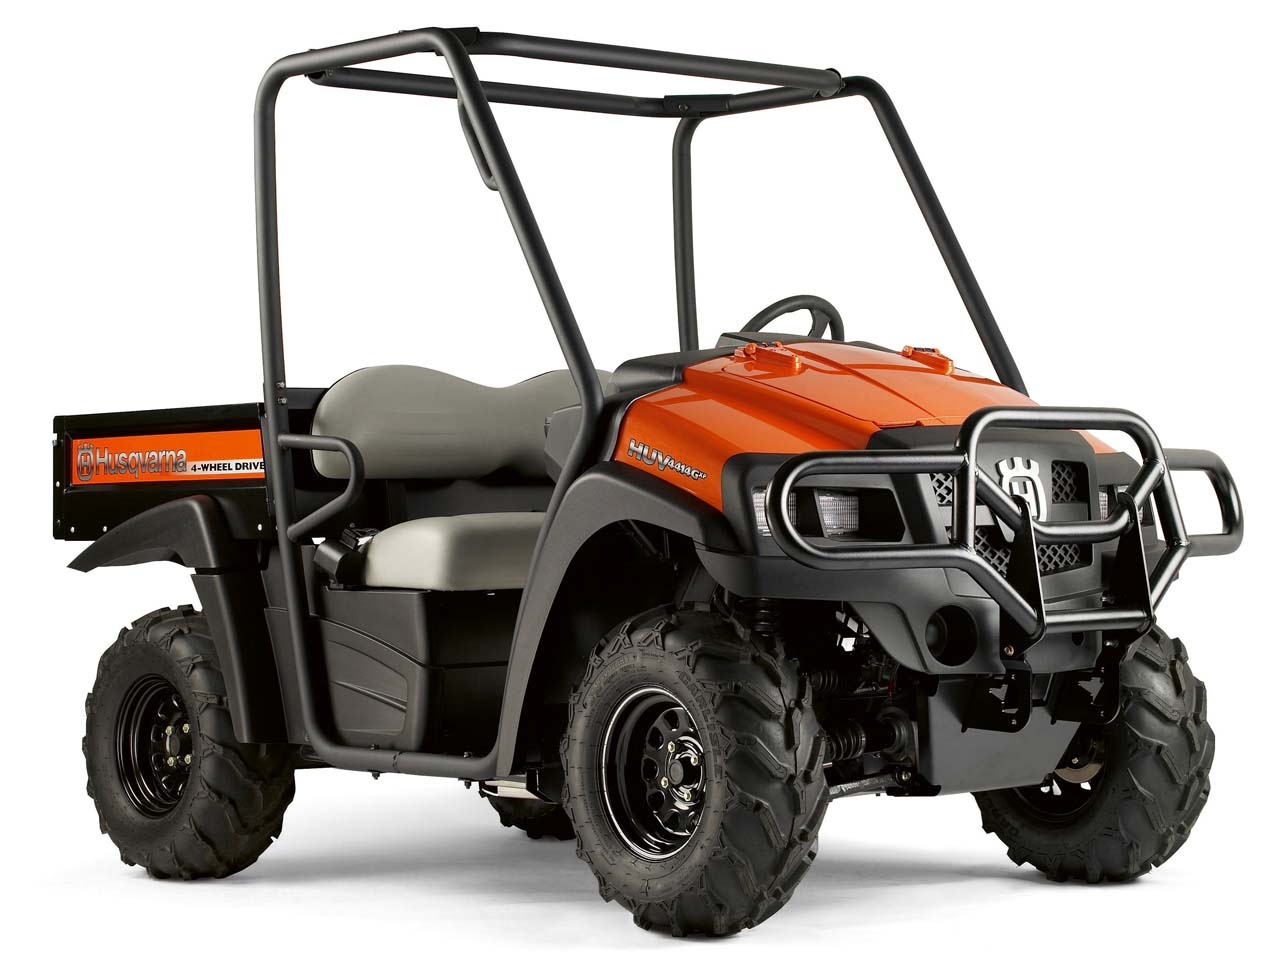 2010 husqvarna huv4414g xp atv illustrated. Black Bedroom Furniture Sets. Home Design Ideas